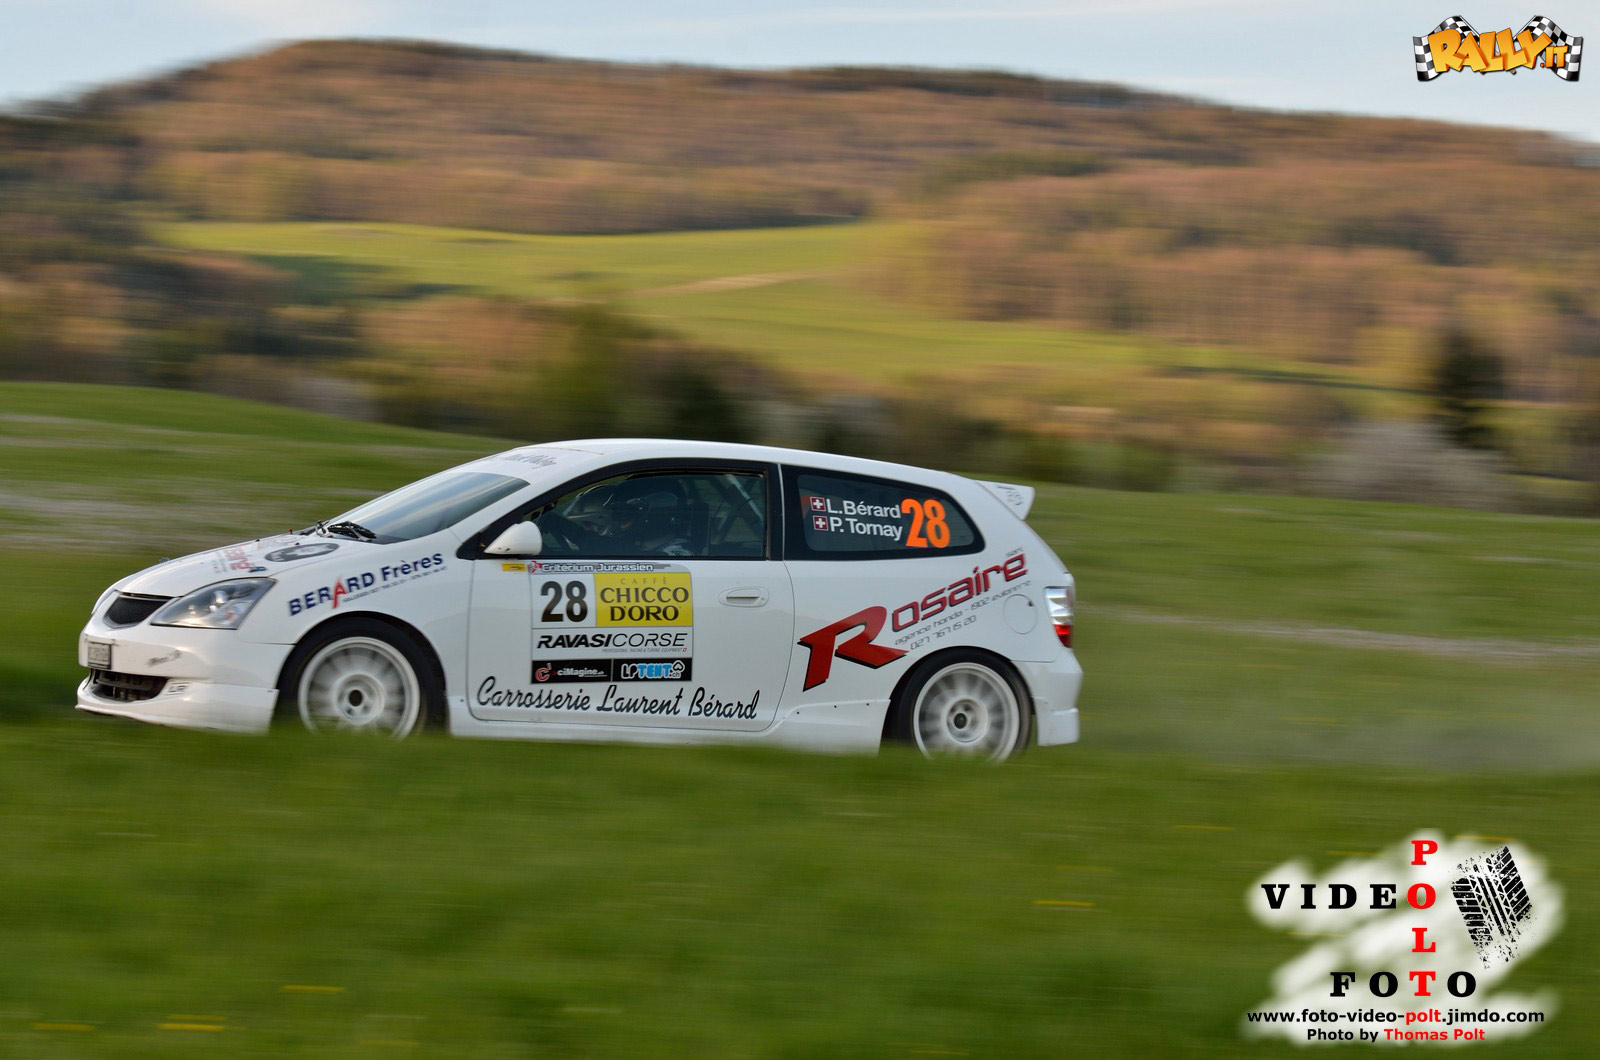 058-Criterium-Jurassien-thomas-polt-2014-rally_it.jpg